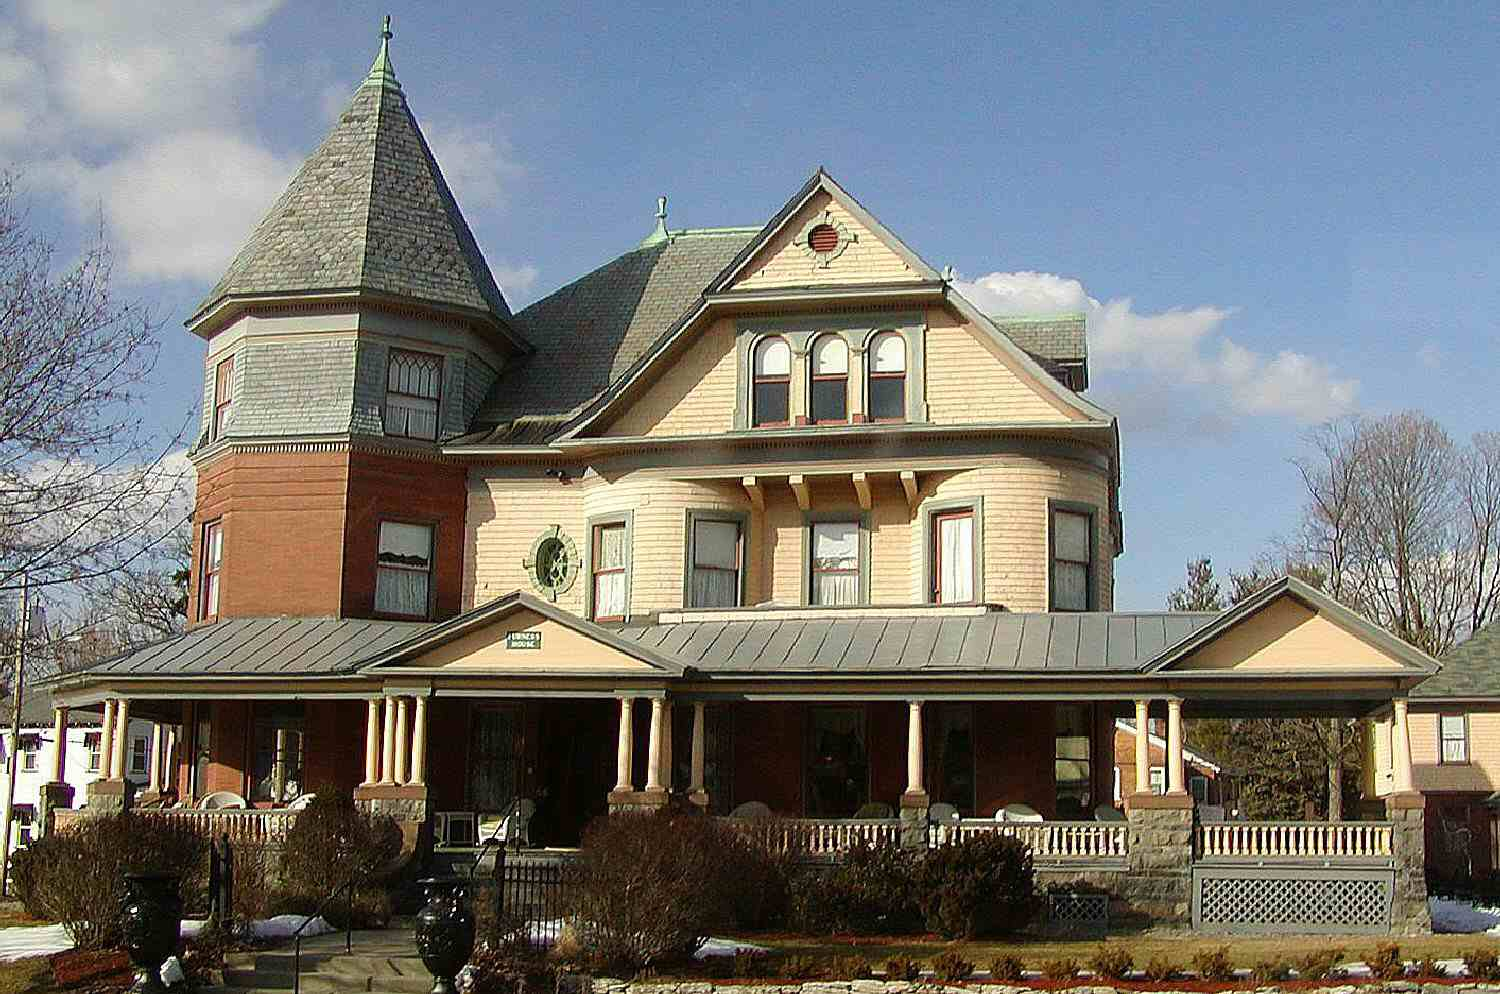 Queen Anne home in Saratoga Springs, New York